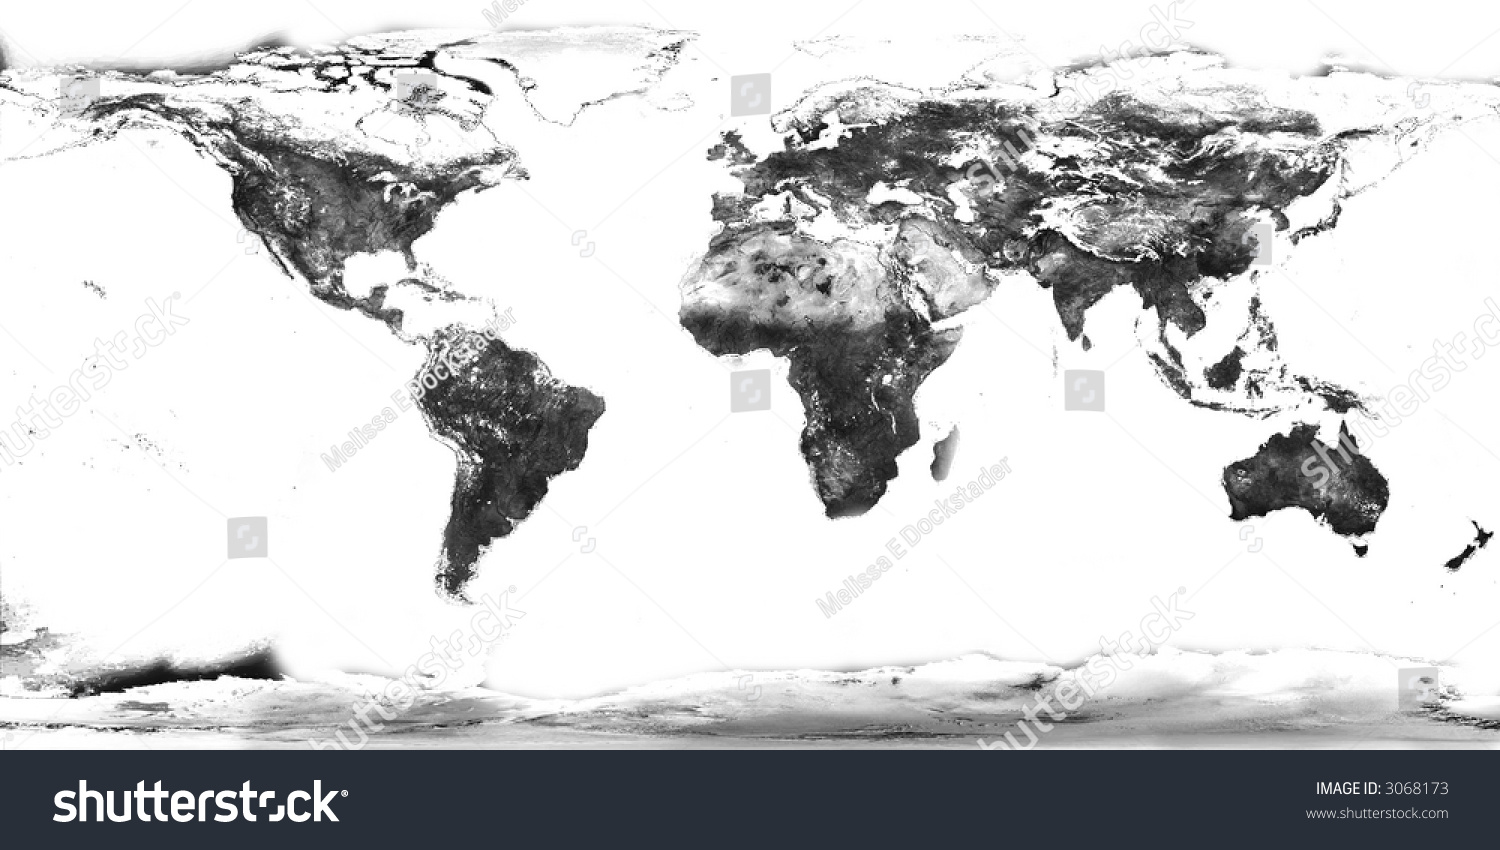 High Quality High Resolution Black And White World Map With Continents Isolated